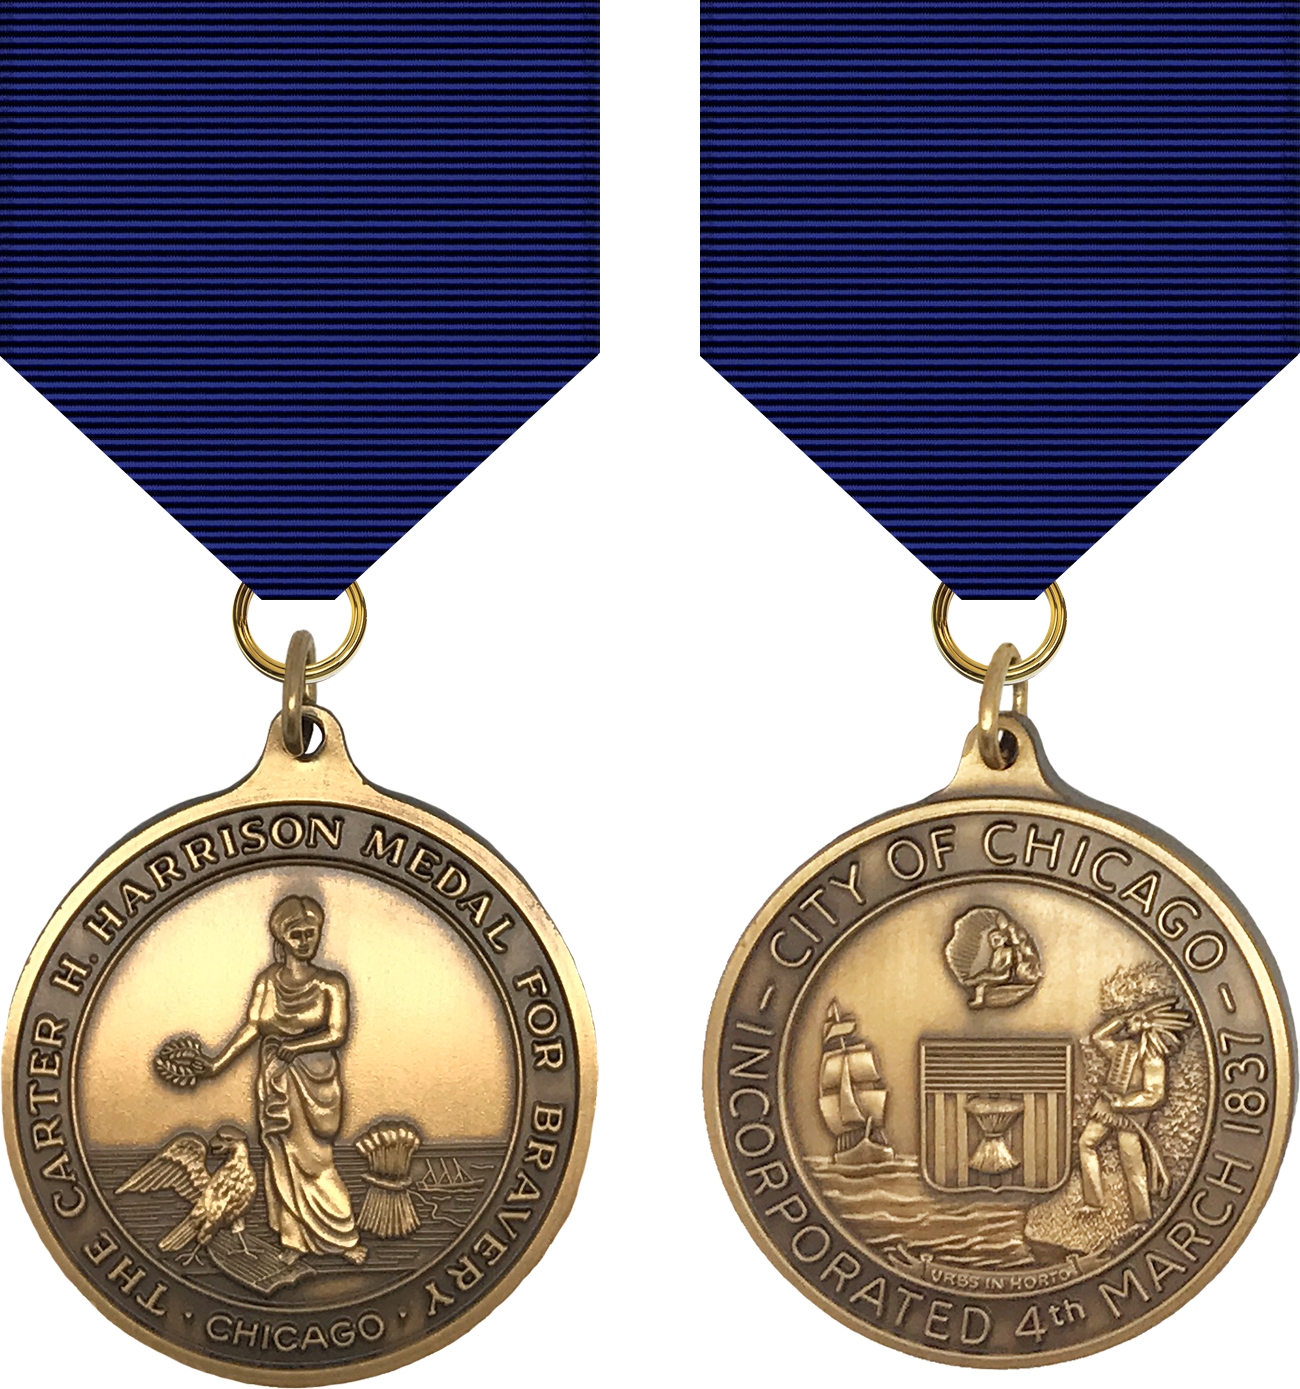 Carter H. Harrison Medal - 1969 Series